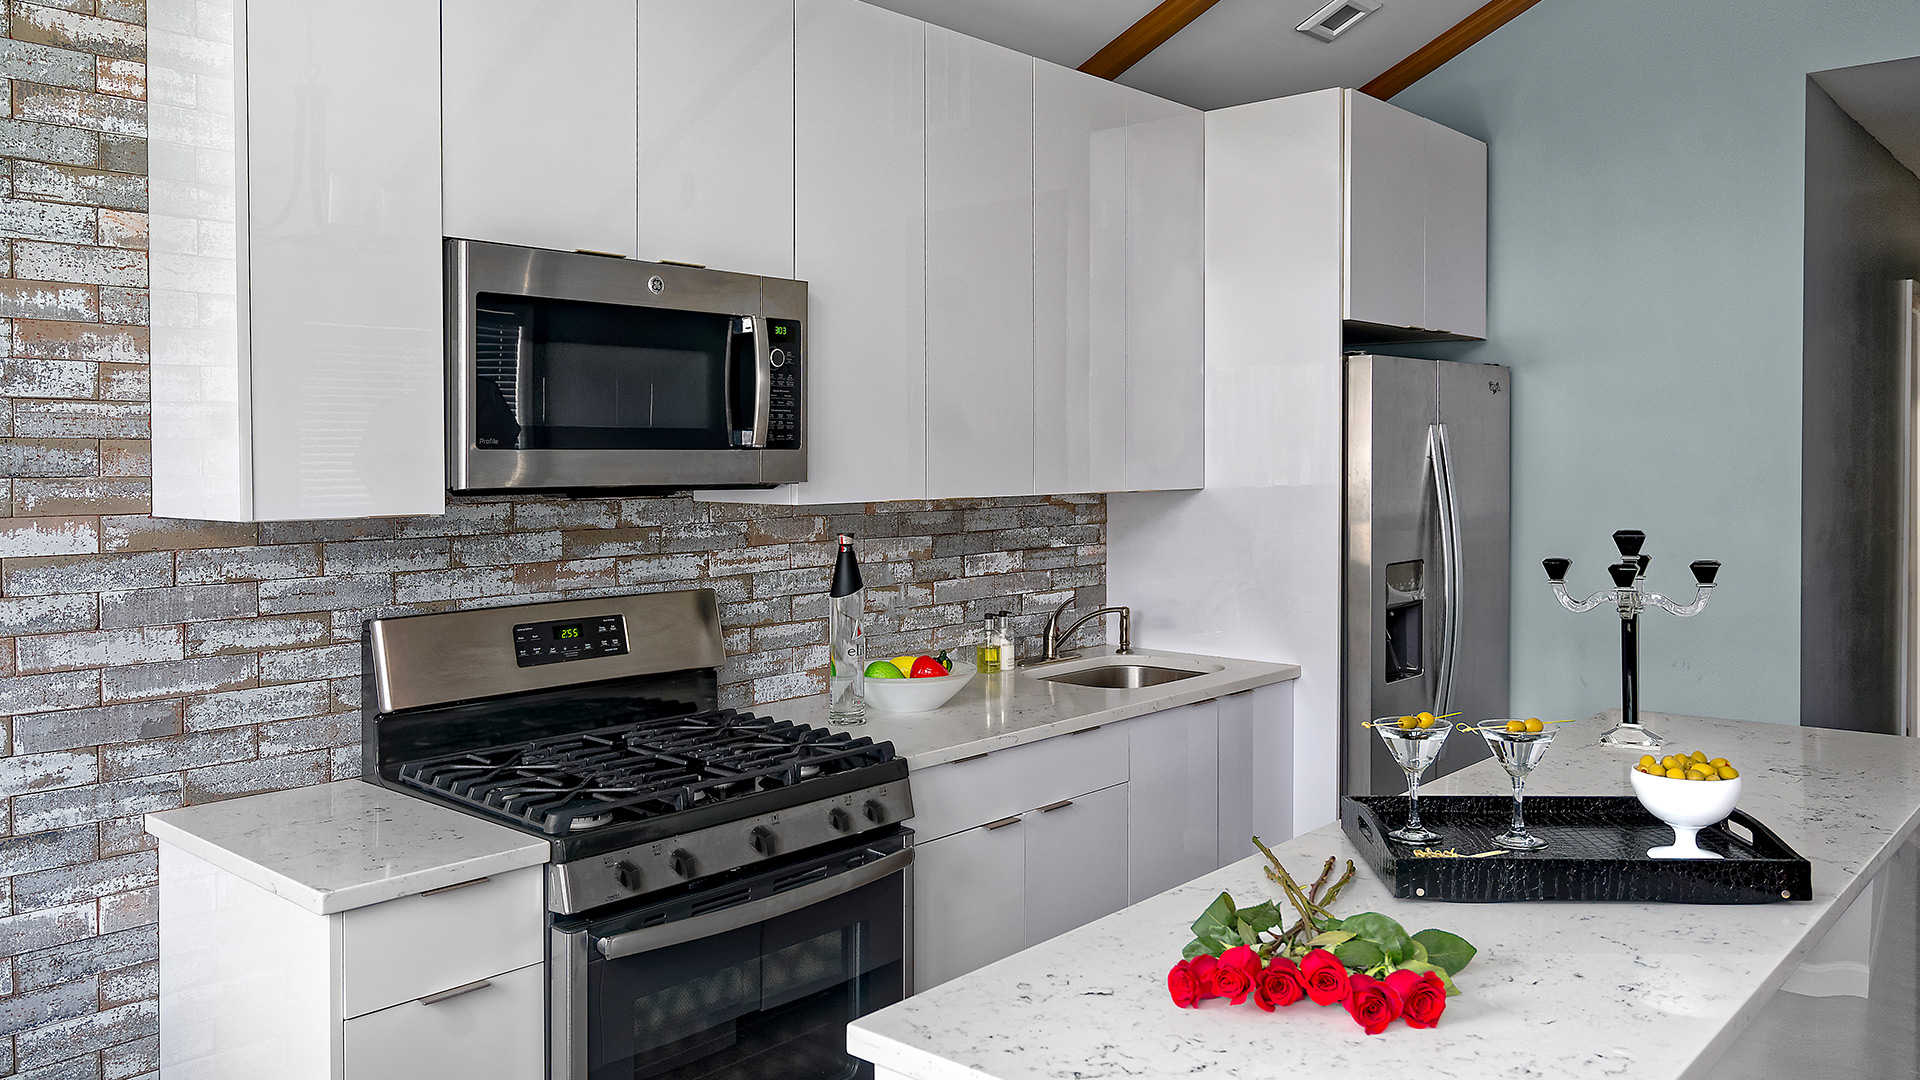 Our Prima cabinets will set an ultra-contemporary tone with their minimalist high-gloss style. High- gloss white cabinets are sure to add a contemporary and stylish look to your kitchen.